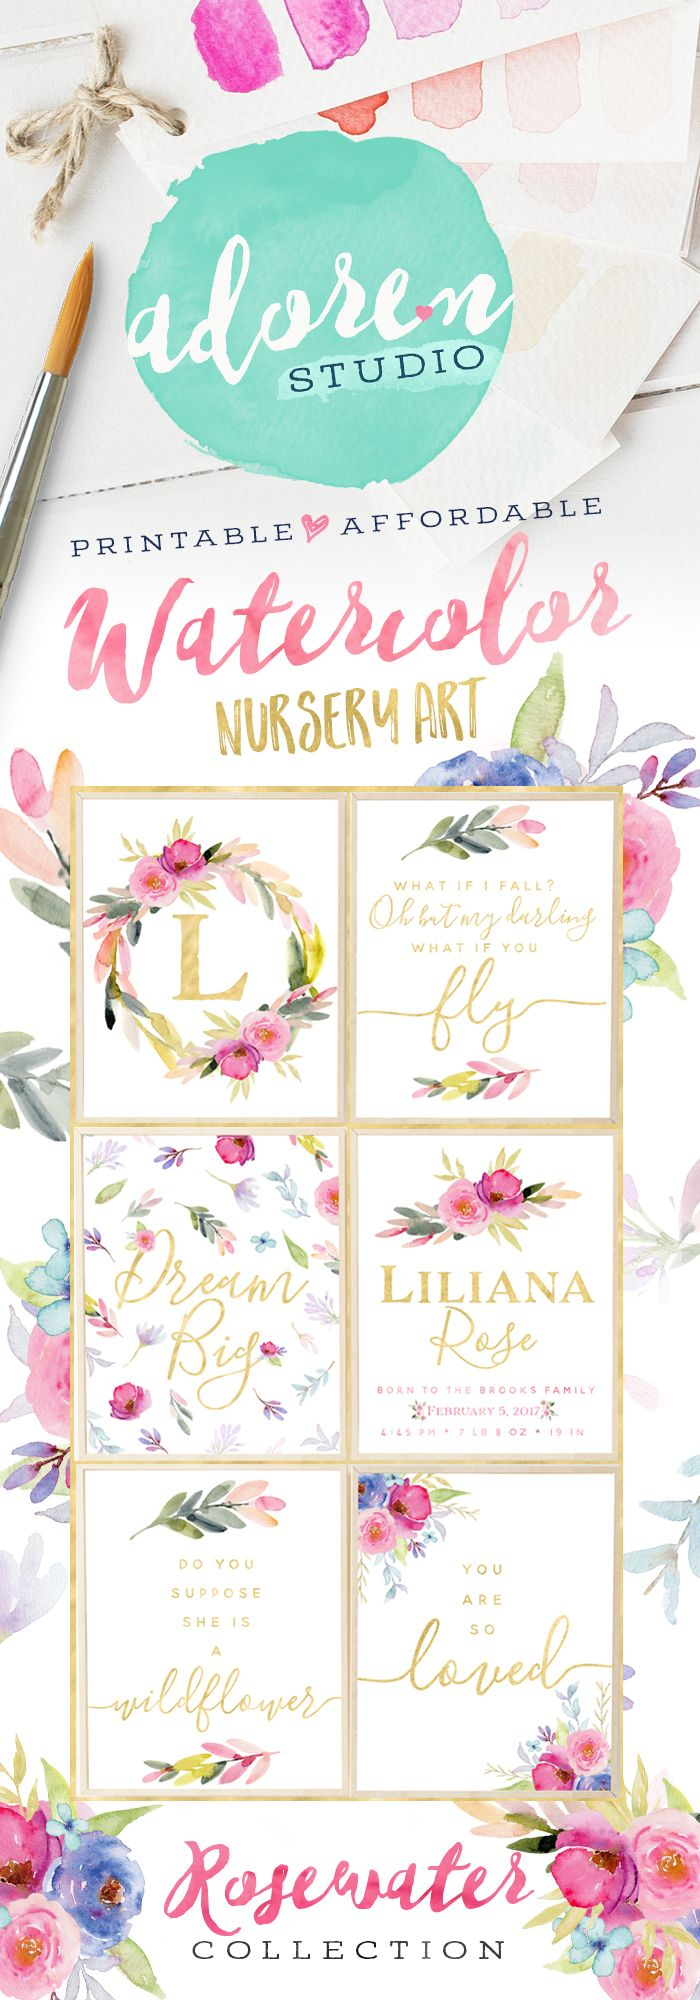 Beautiful watercolor nursery printables and prints from Adoren Studio! Watercolor and Florals are major trends in nursery decor - create the look for less through affordable nursery printables!